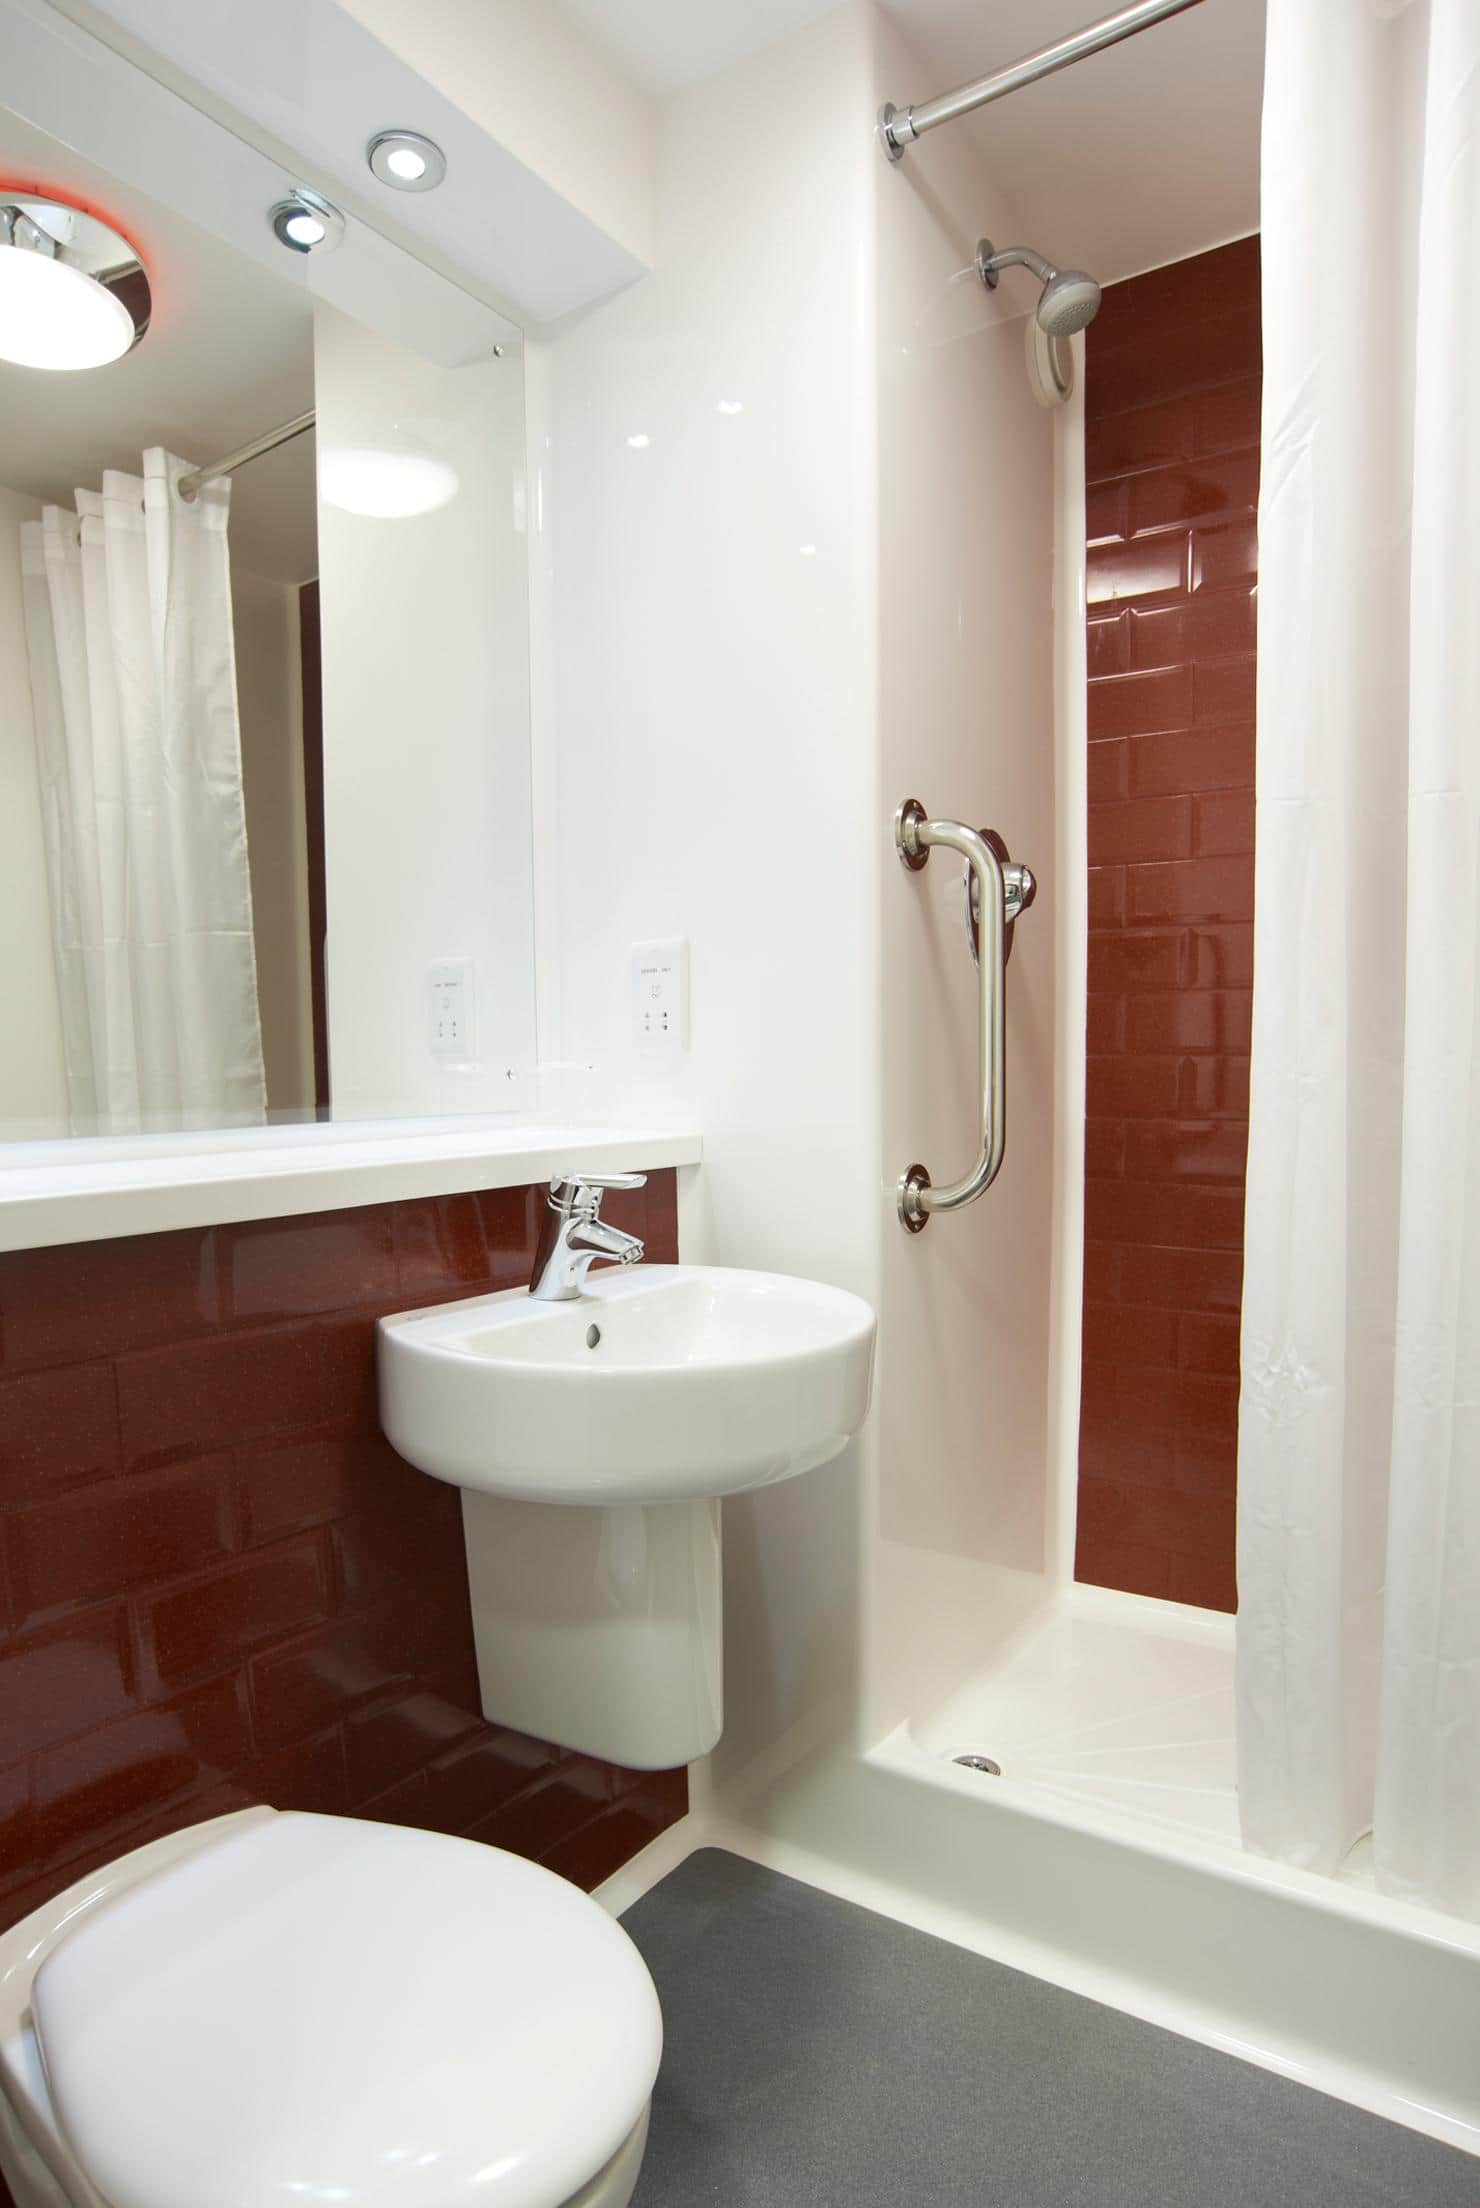 Travelodge edinburgh central queen street hotel for Bathrooms liverpool